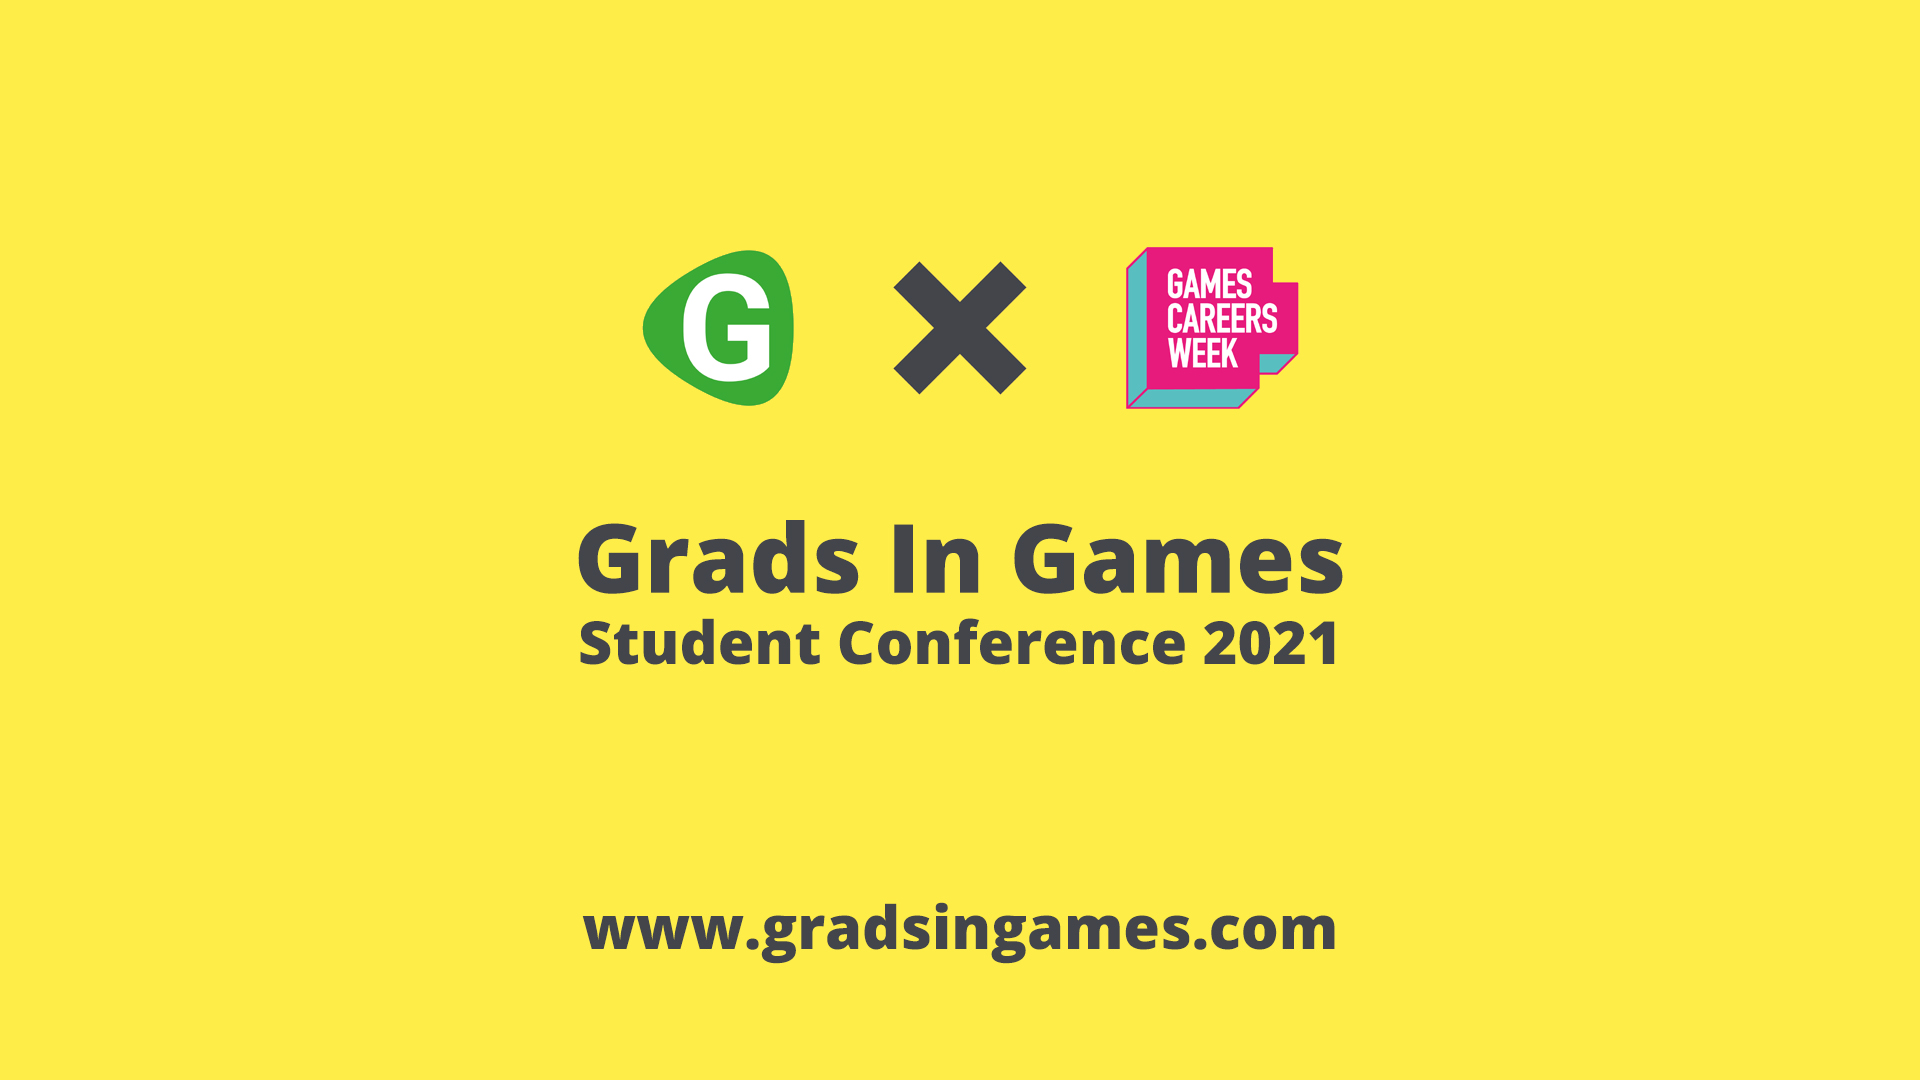 Grads In Games Student Conference Sessions 2021 now available